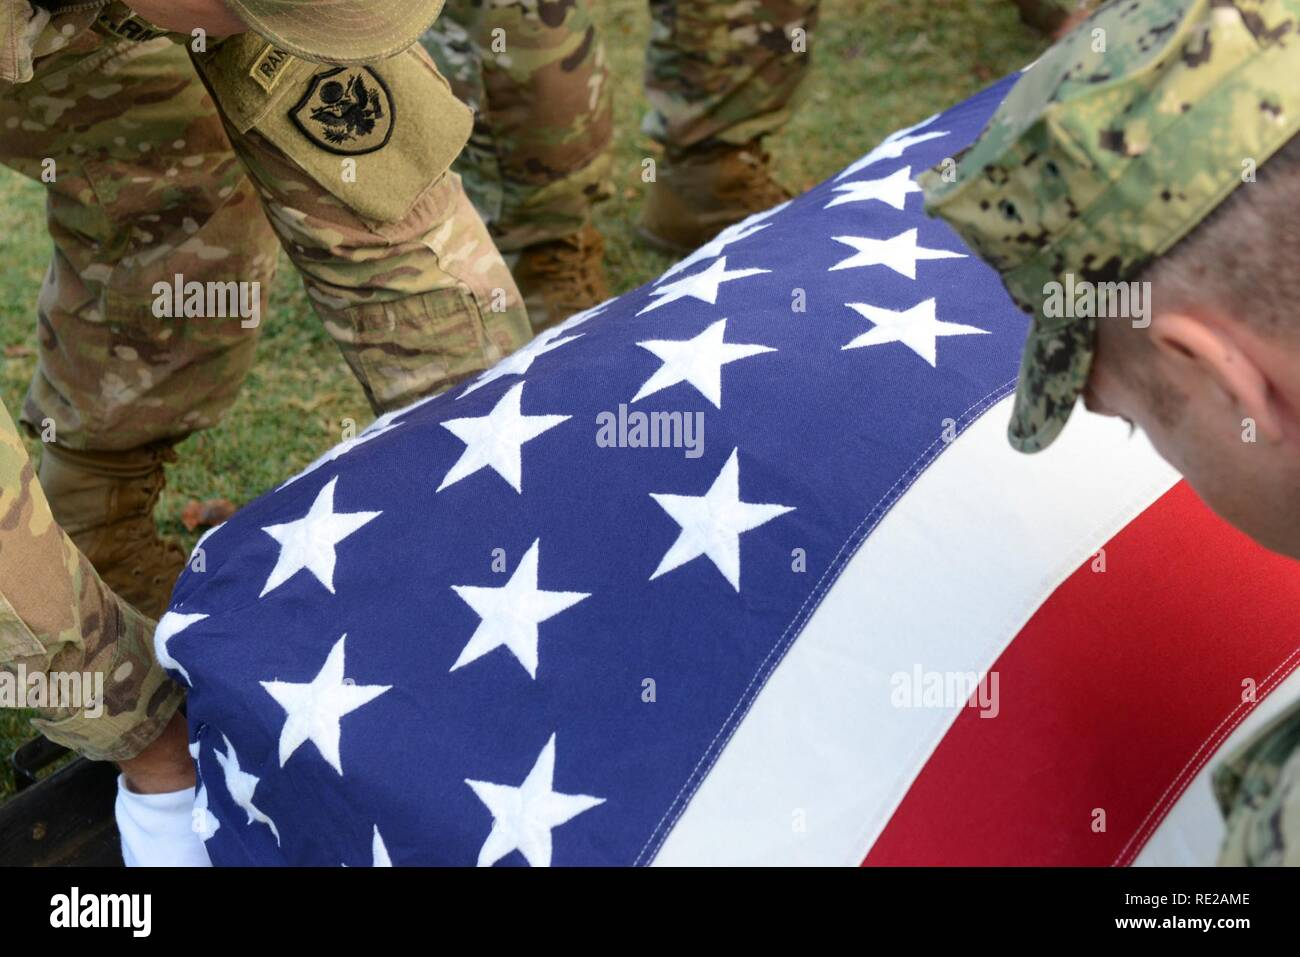 Members of the Defense POW/MIA Accounting Agency (DPAA) honor guard detail drape the American Flag over a disinterred casket during the disinterment ceremony for unknown U.S. Marines from the battle at Tarawa at the National Memorial Cemetery of the Pacific, Honolulu, Hawaii, Nov. 7, 2016. The remains will be transferred to the DPAA laboratory for identification. DPAA's mission is to provide the fullest possible accounting for our missing personnel to their families and the nation. Stock Photo